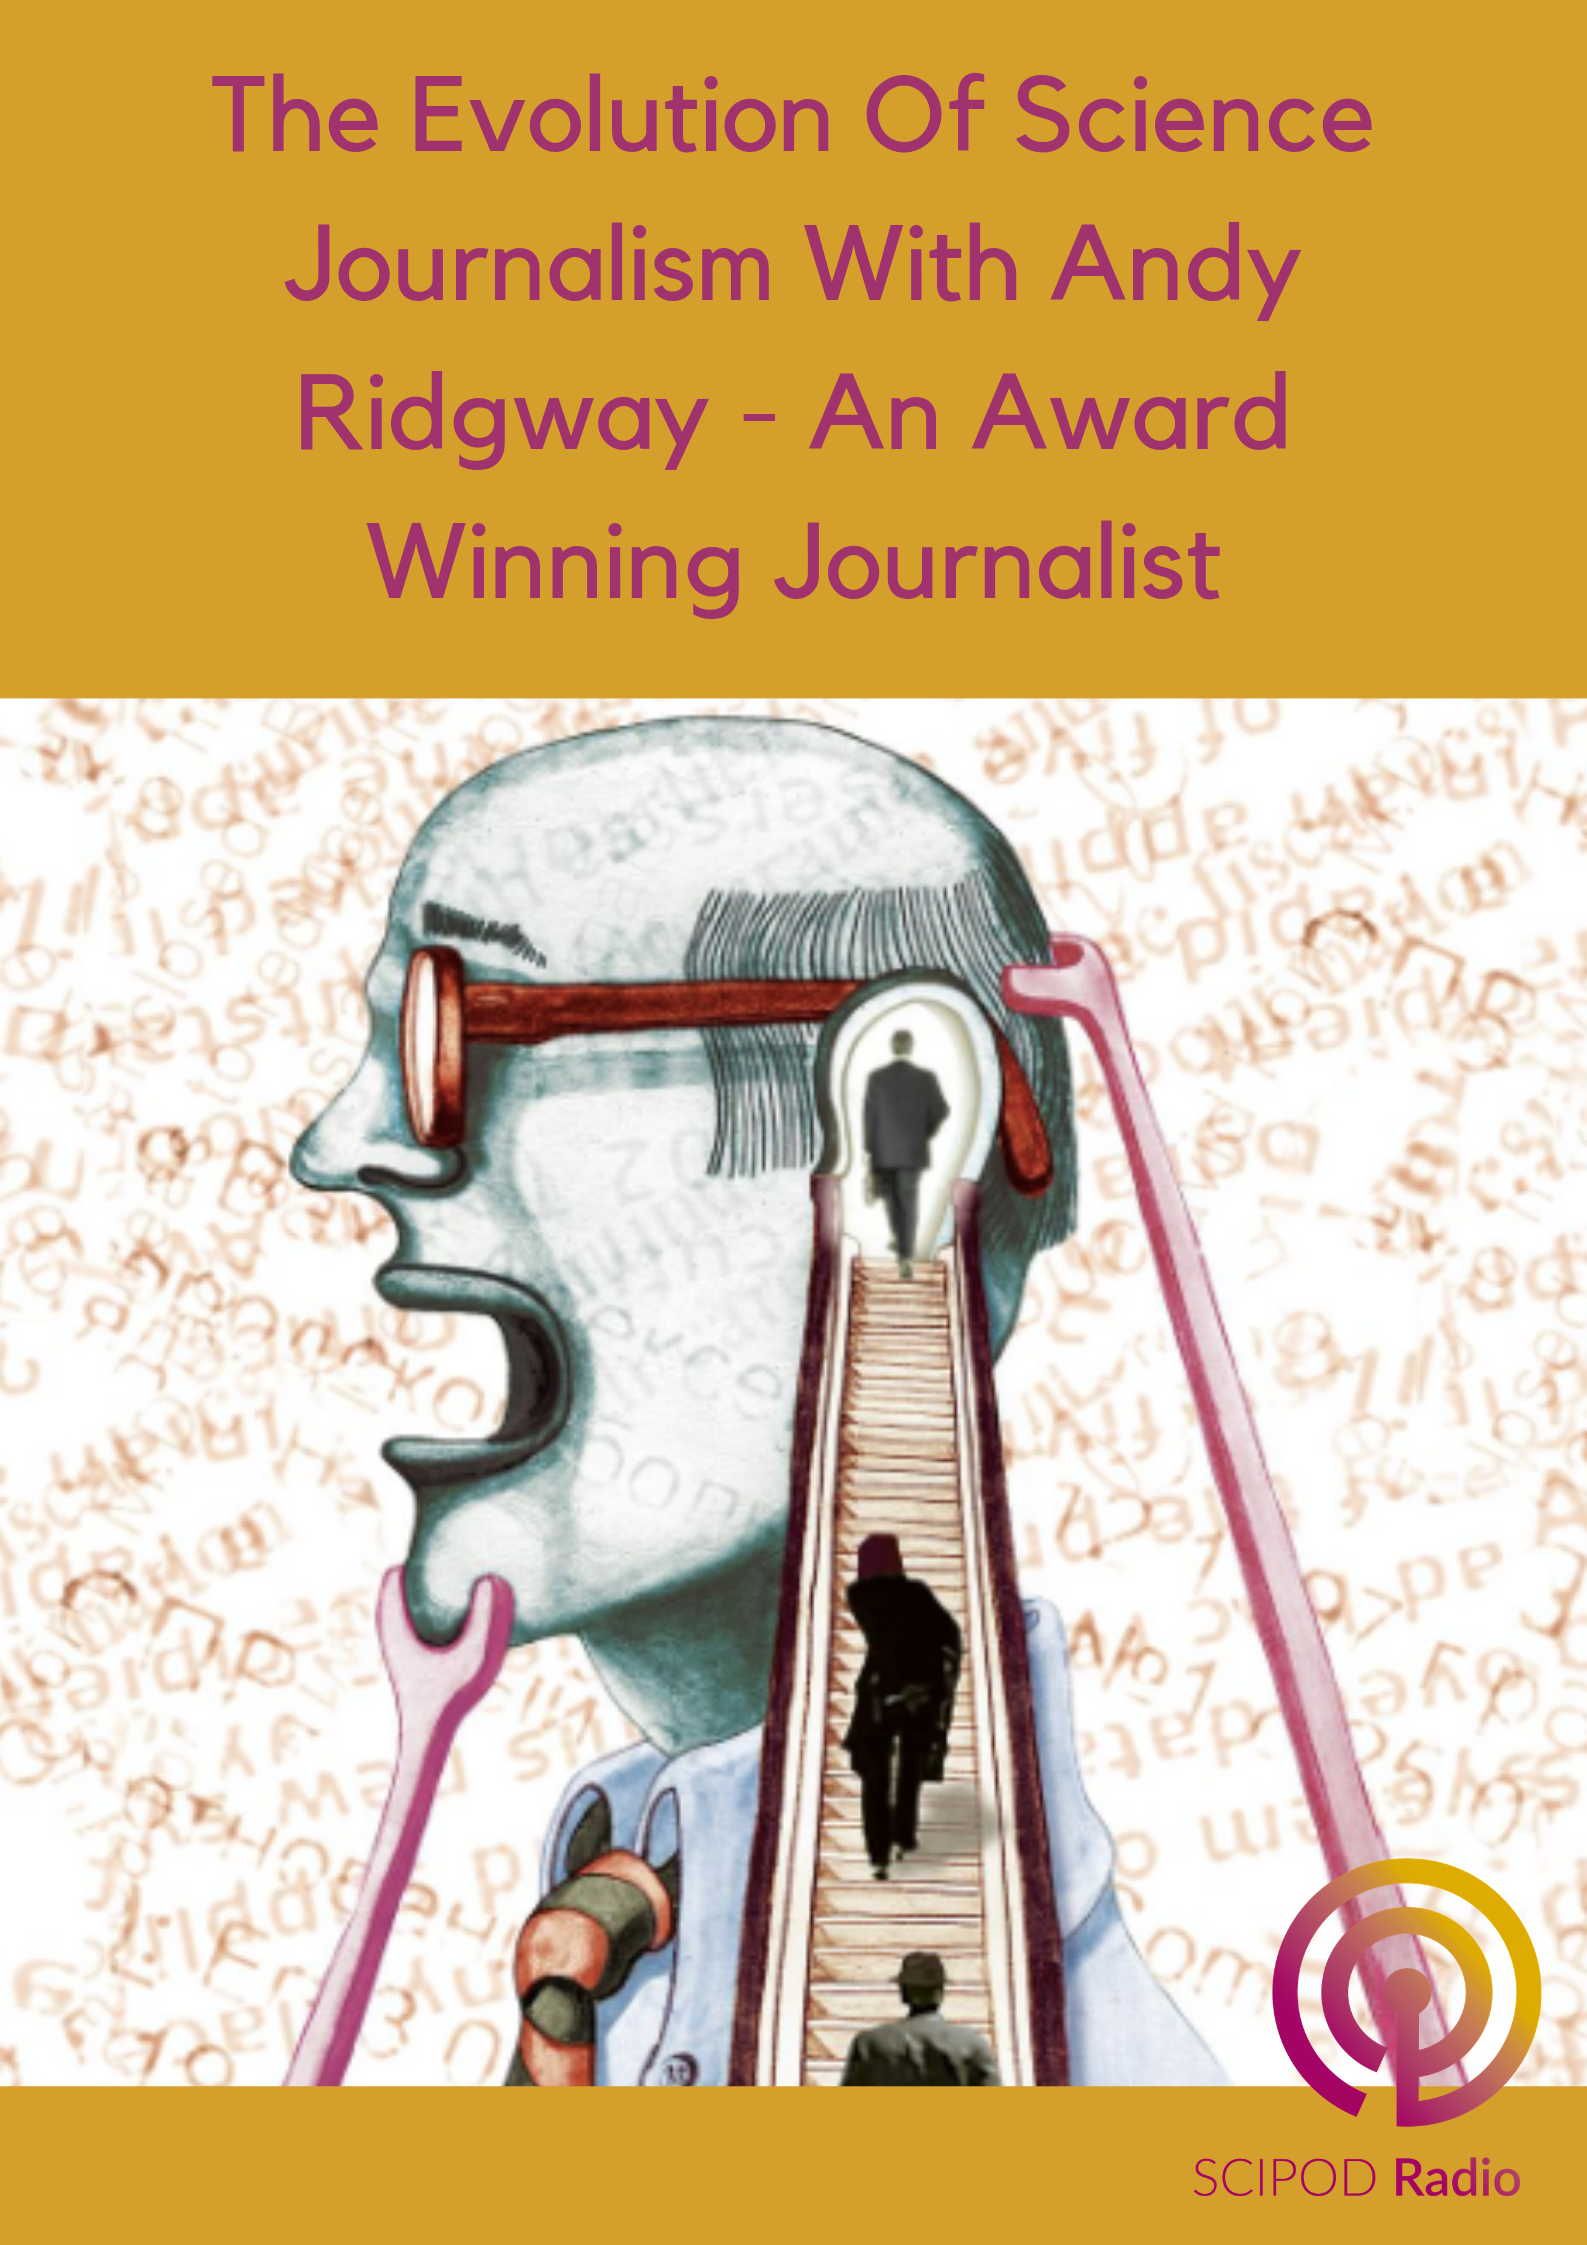 The Evolution Of Science Journalism With Andy Ridgway – An Award Winning Journalist